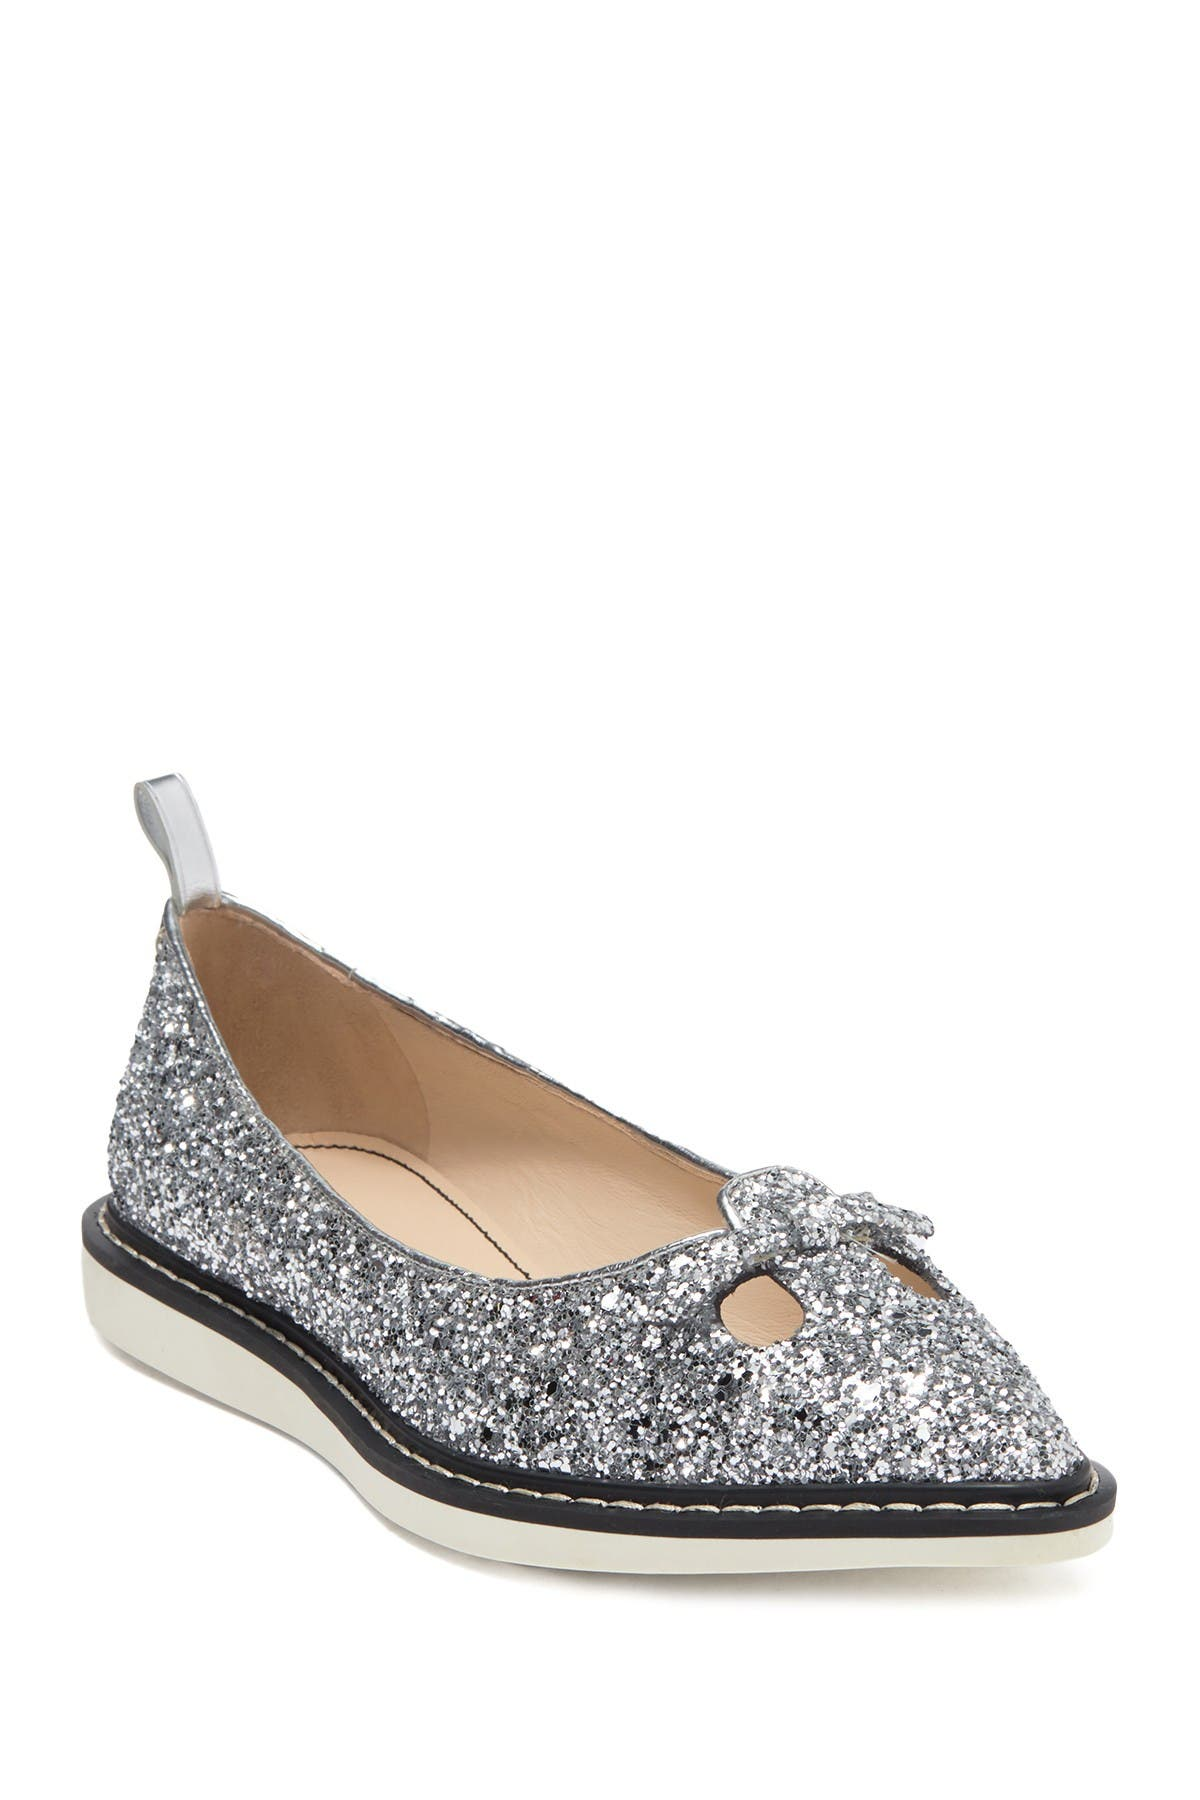 Image of Marc Jacobs The Mouse Shoe Pointy Toe Glitter Loafer